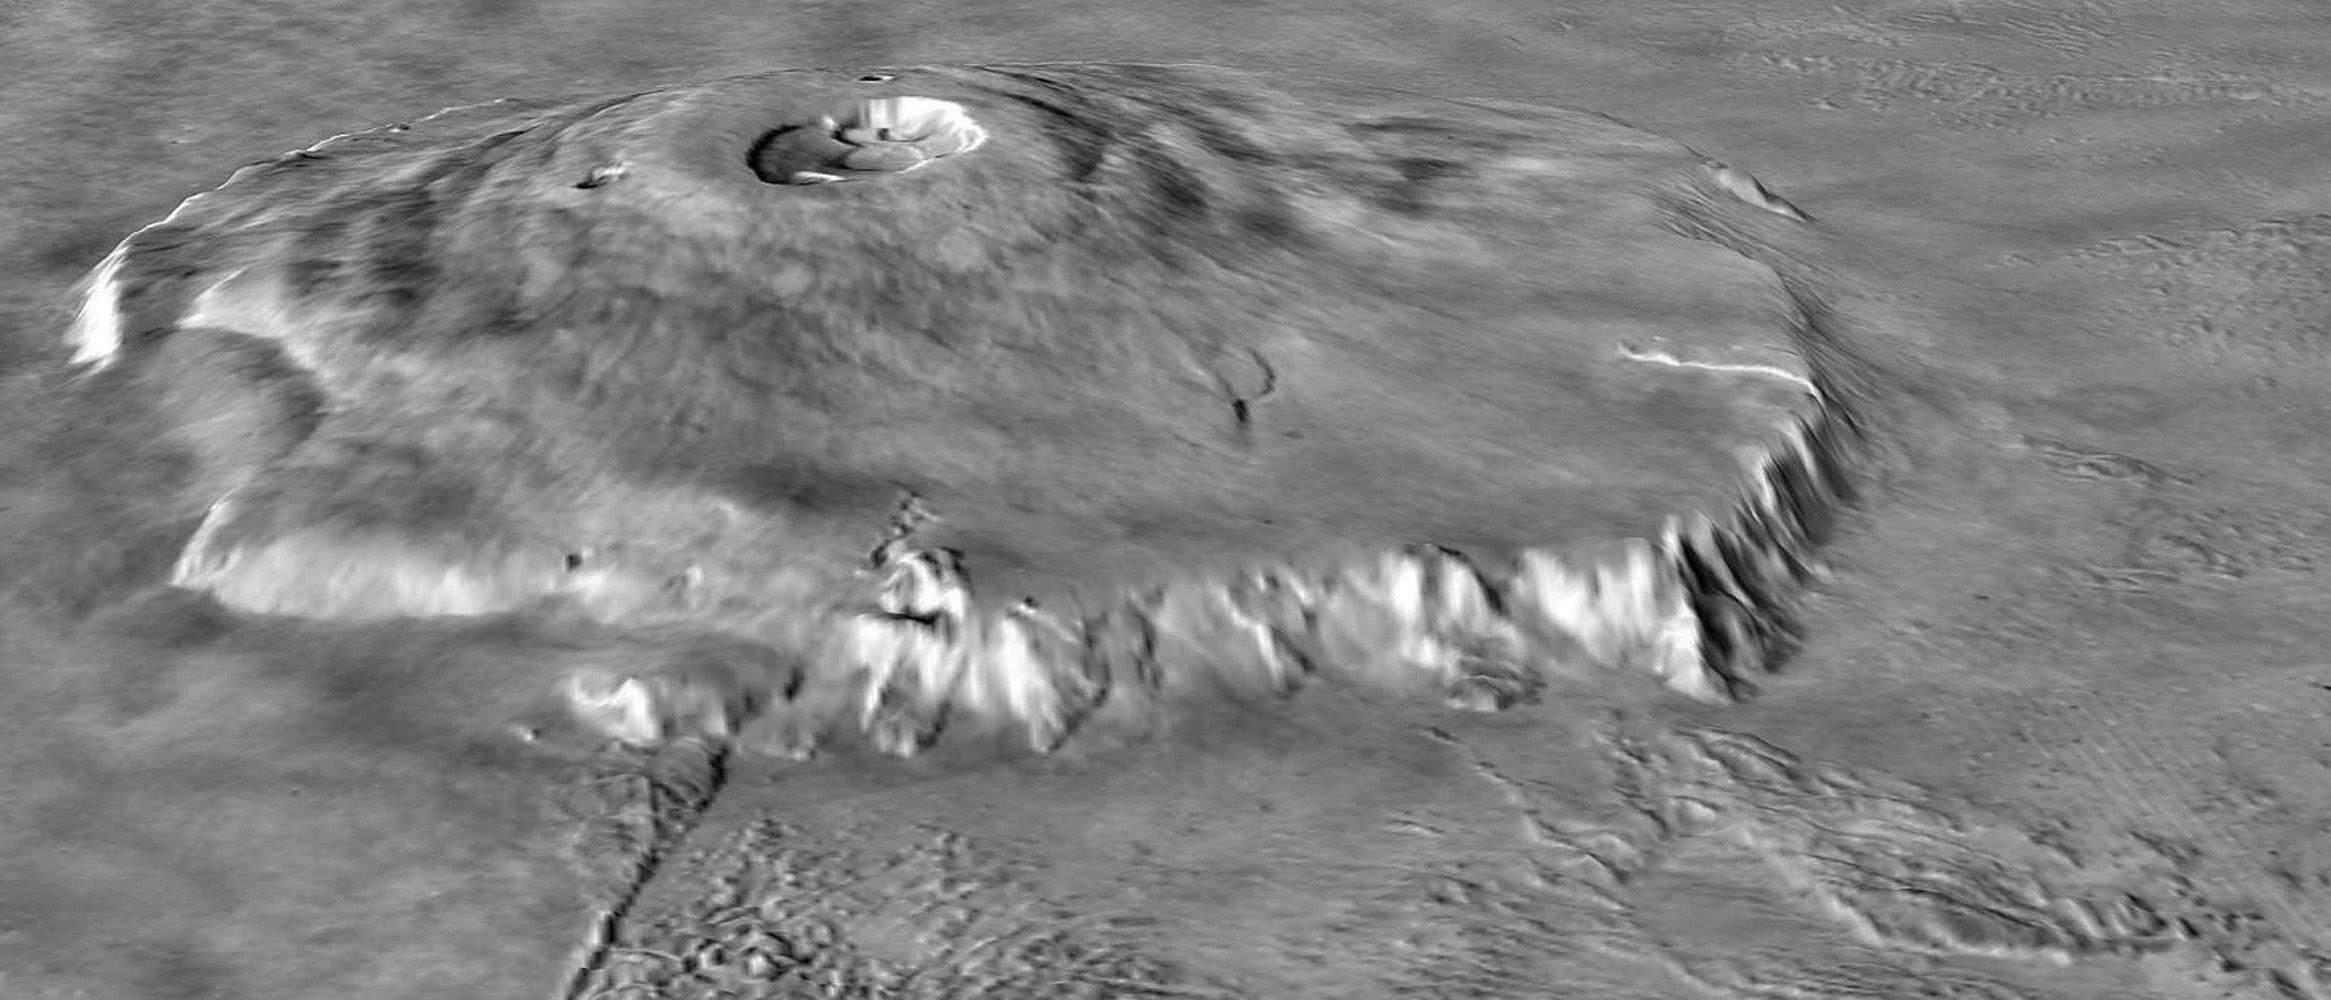 NASA's Mars Global Surveyor shows Olympus Mons on Mars featuring the volcano's scarp and massive aureole deposit that was produced by flank collapse.